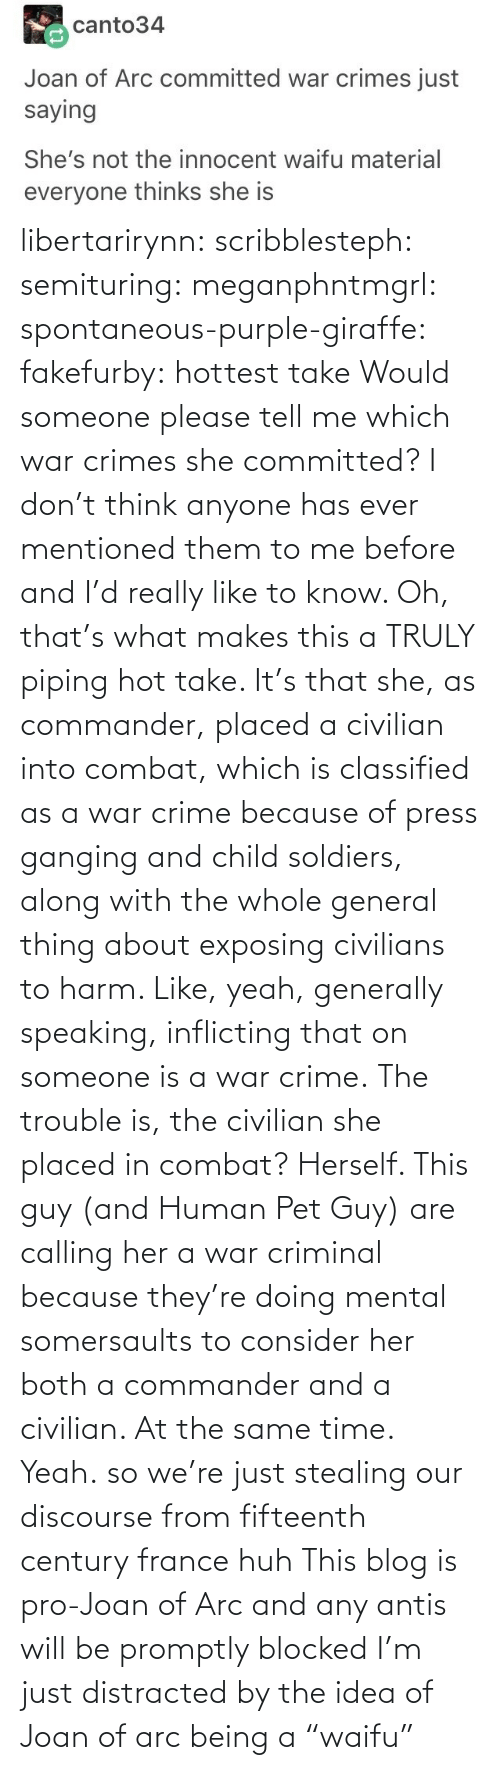 "Herself: libertarirynn: scribblesteph:  semituring:  meganphntmgrl:  spontaneous-purple-giraffe:   fakefurby: hottest take  Would someone please tell me which war crimes she committed? I don't think anyone has ever mentioned them to me before and I'd really like to know.    Oh, that's what makes this a TRULY piping hot take. It's that she, as commander, placed a civilian into combat, which is classified as a war crime because of press ganging and child soldiers, along with the whole general thing about exposing civilians to harm. Like, yeah, generally speaking, inflicting that on someone is a war crime. The trouble is, the civilian she placed in combat? Herself.  This guy (and Human Pet Guy) are calling her a war criminal because they're doing mental somersaults to consider her both a commander and a civilian. At the same time.  Yeah.  so we're just stealing our discourse from fifteenth century france huh   This blog is pro-Joan of Arc and any antis will be promptly blocked   I'm just distracted by the idea of Joan of arc being a ""waifu"""